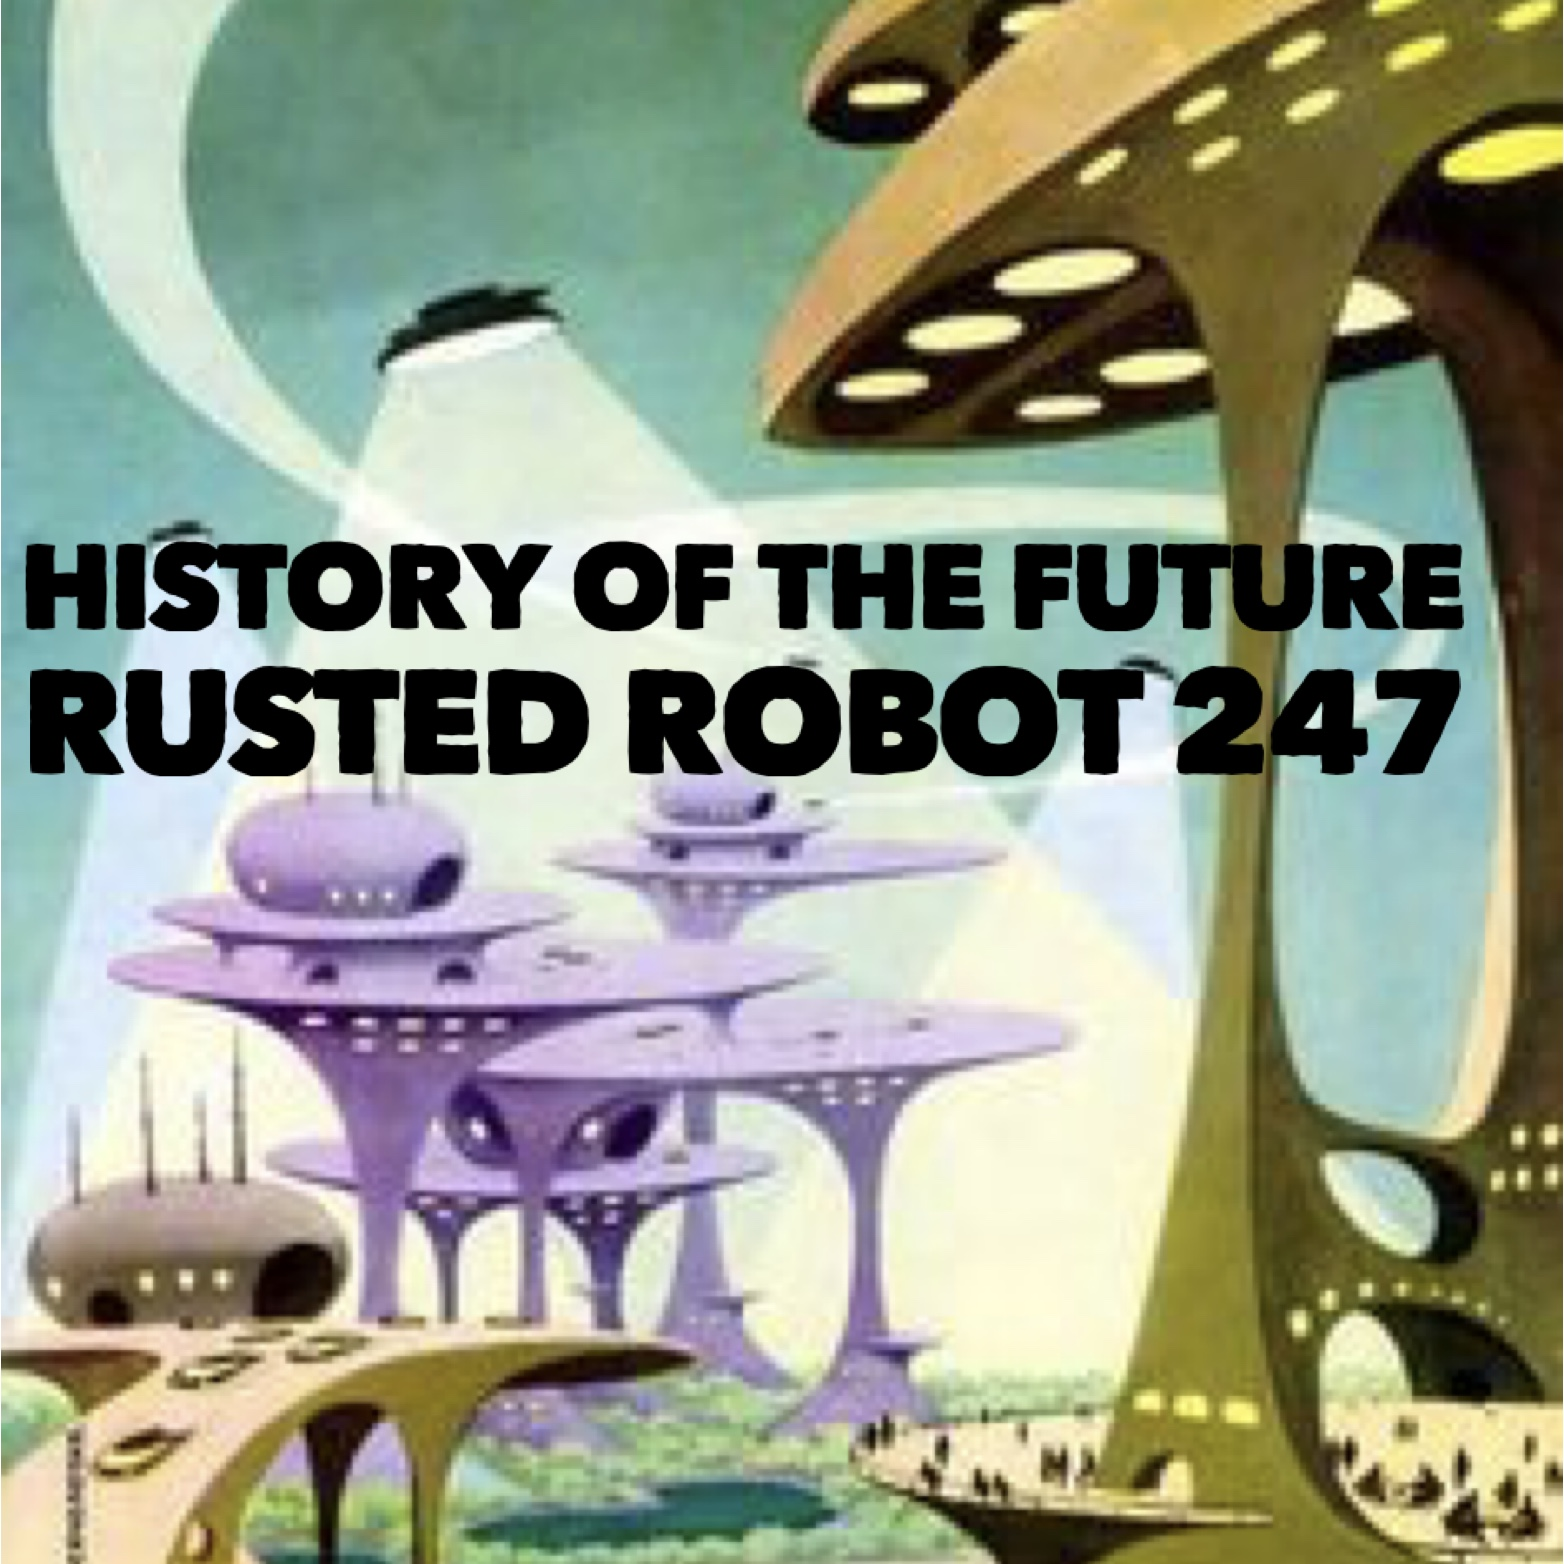 History of the Future - 247